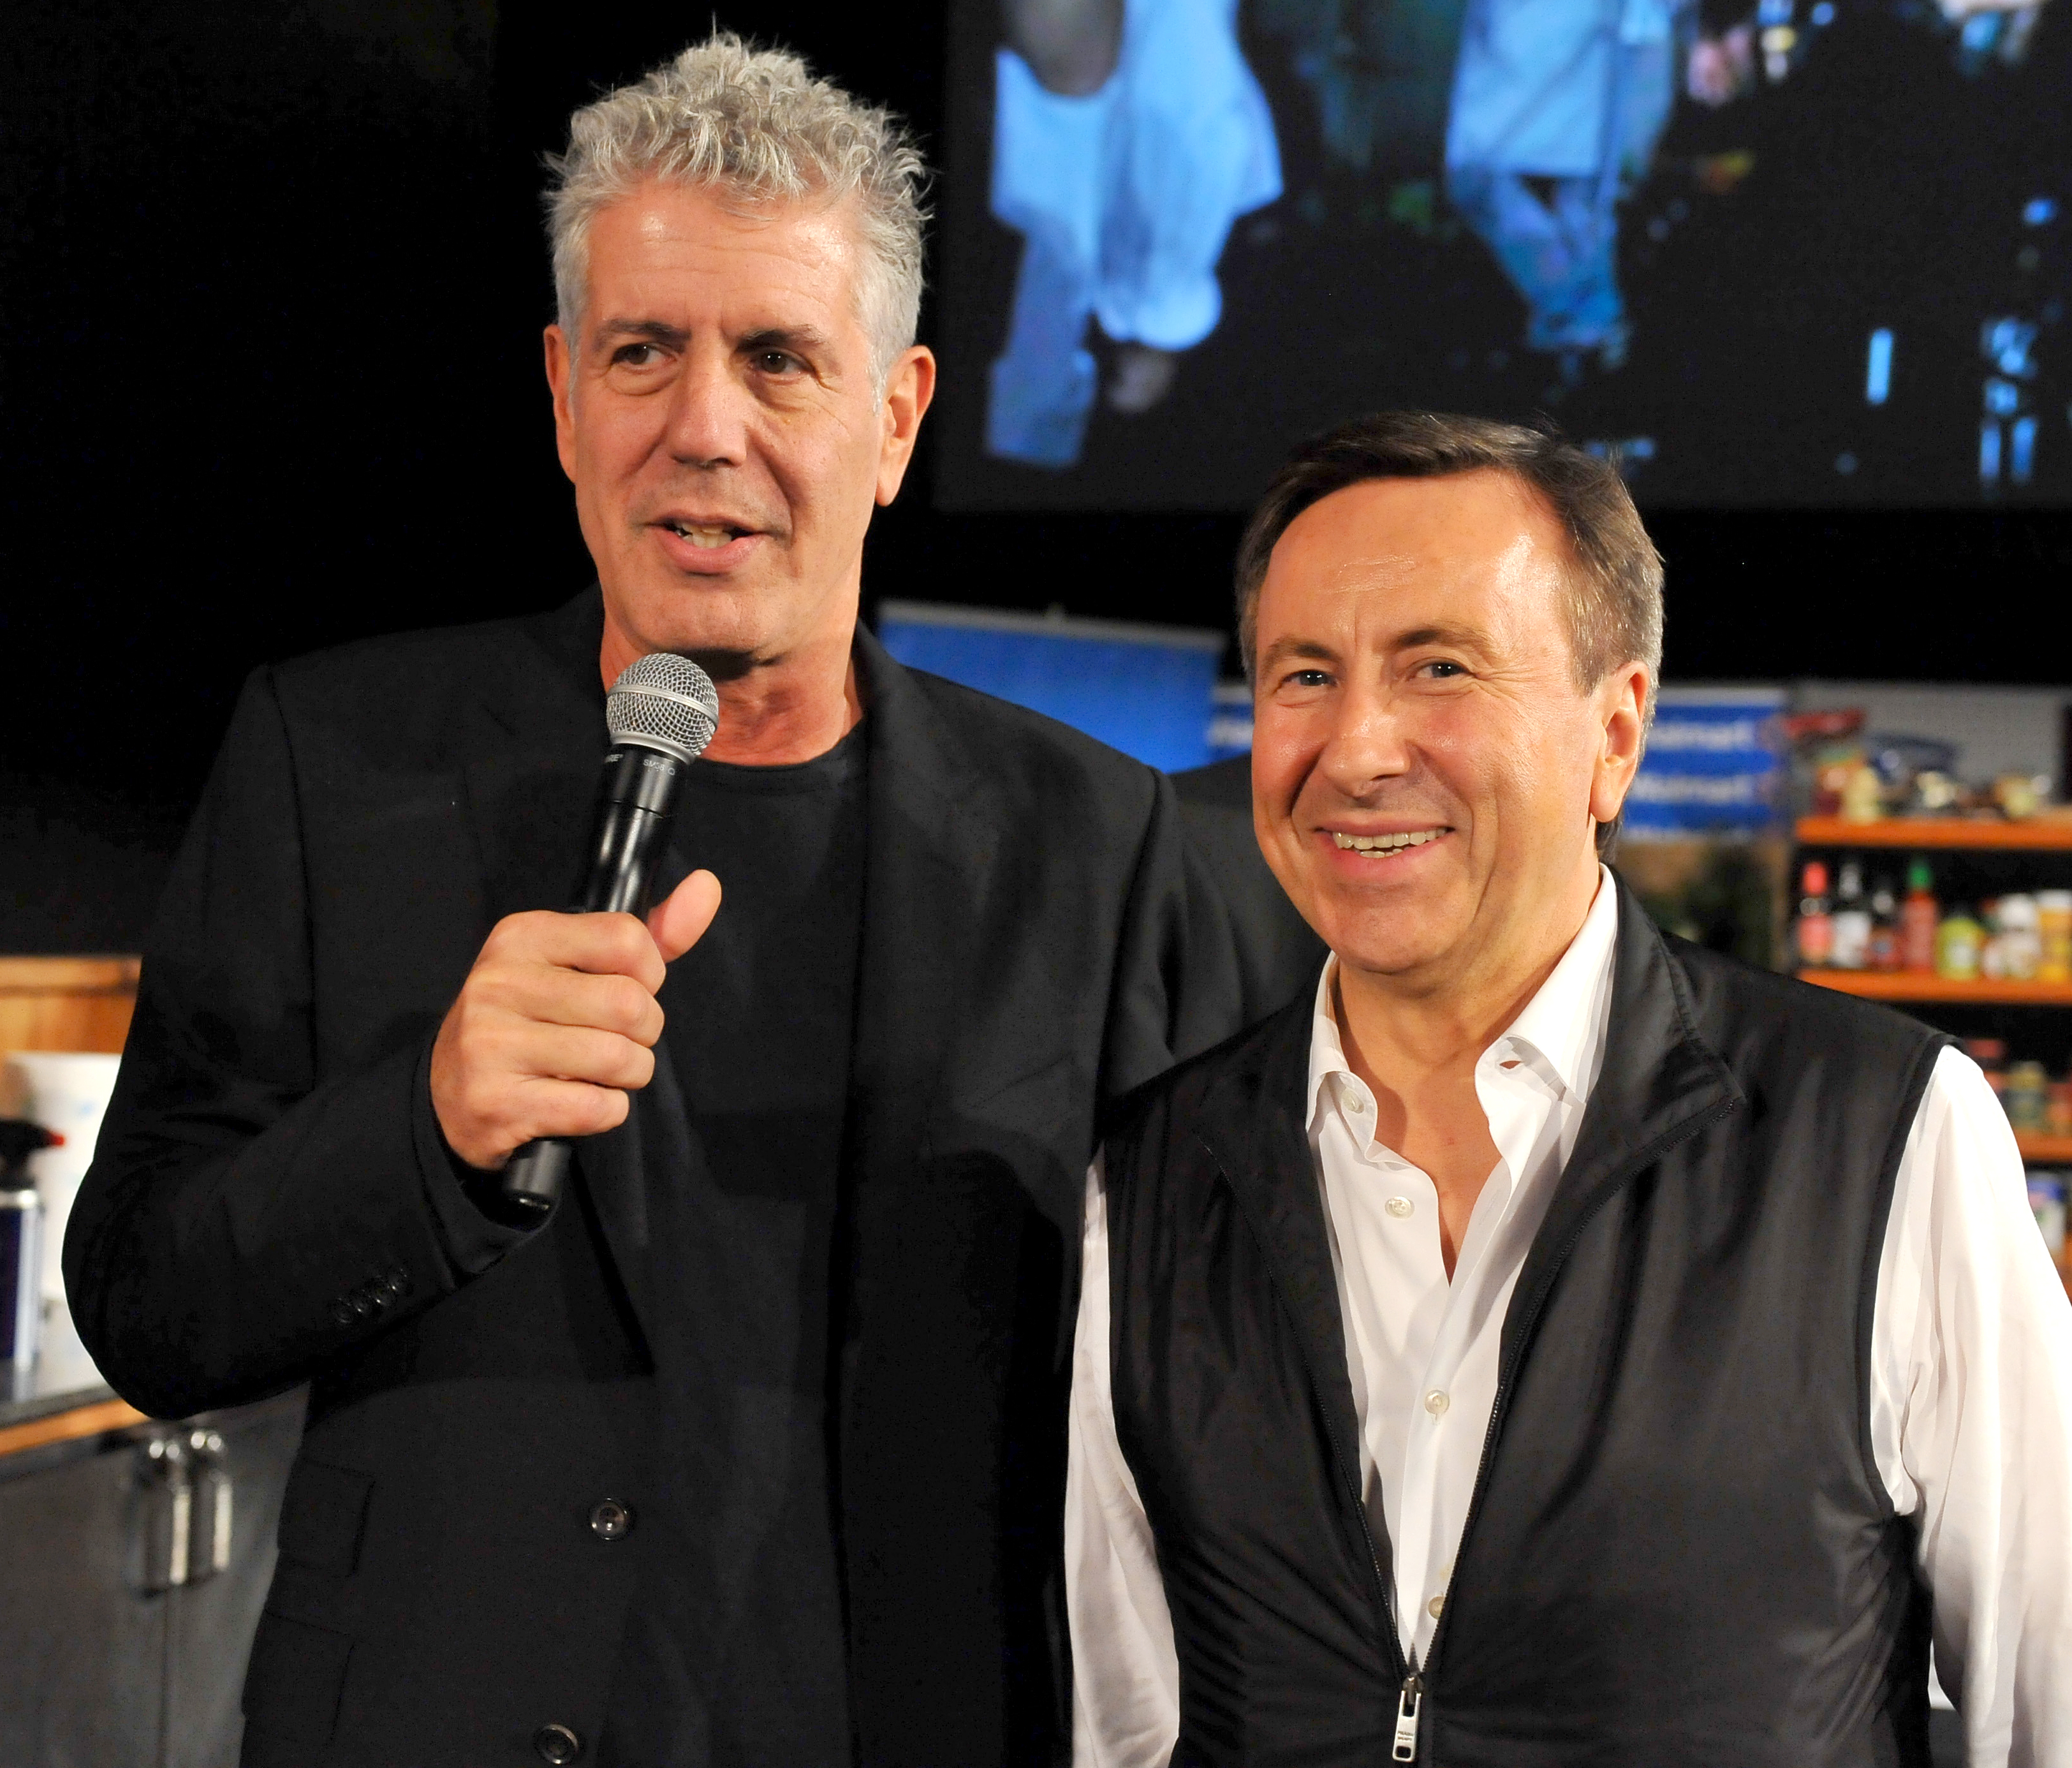 """Anthony Bourdain Remembered - """"His passion for cooking, writing and his hunger for adventure were inspiring,"""" wrote Boulud, a friend of Bourdain's. """"We will always have Lyon and those days of eating like kings together … his passionate character and true honesty will be missed across the industry and the world."""""""